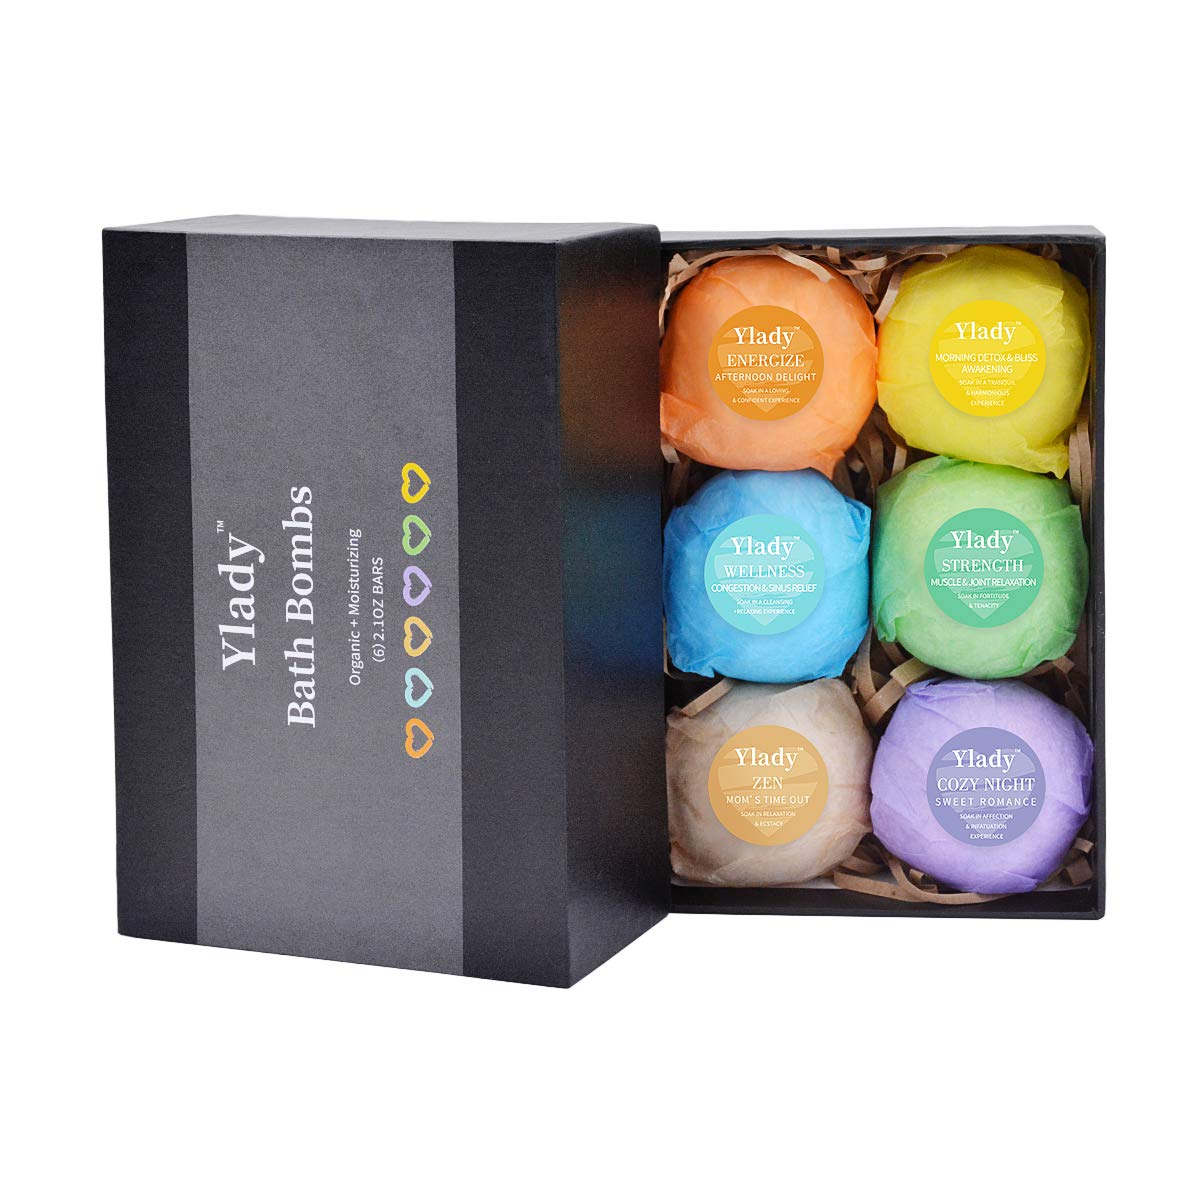 Pack Of 6 YLady Bath Bombs Gift Set Organic Natural Large Vanilla Lavender Mint Lemon Eucalyptus Honeysuckle Gift for Men, Women and Kids; Best Relaxing Epsom Salt Luxury Spa Soak, Gifts For Women and